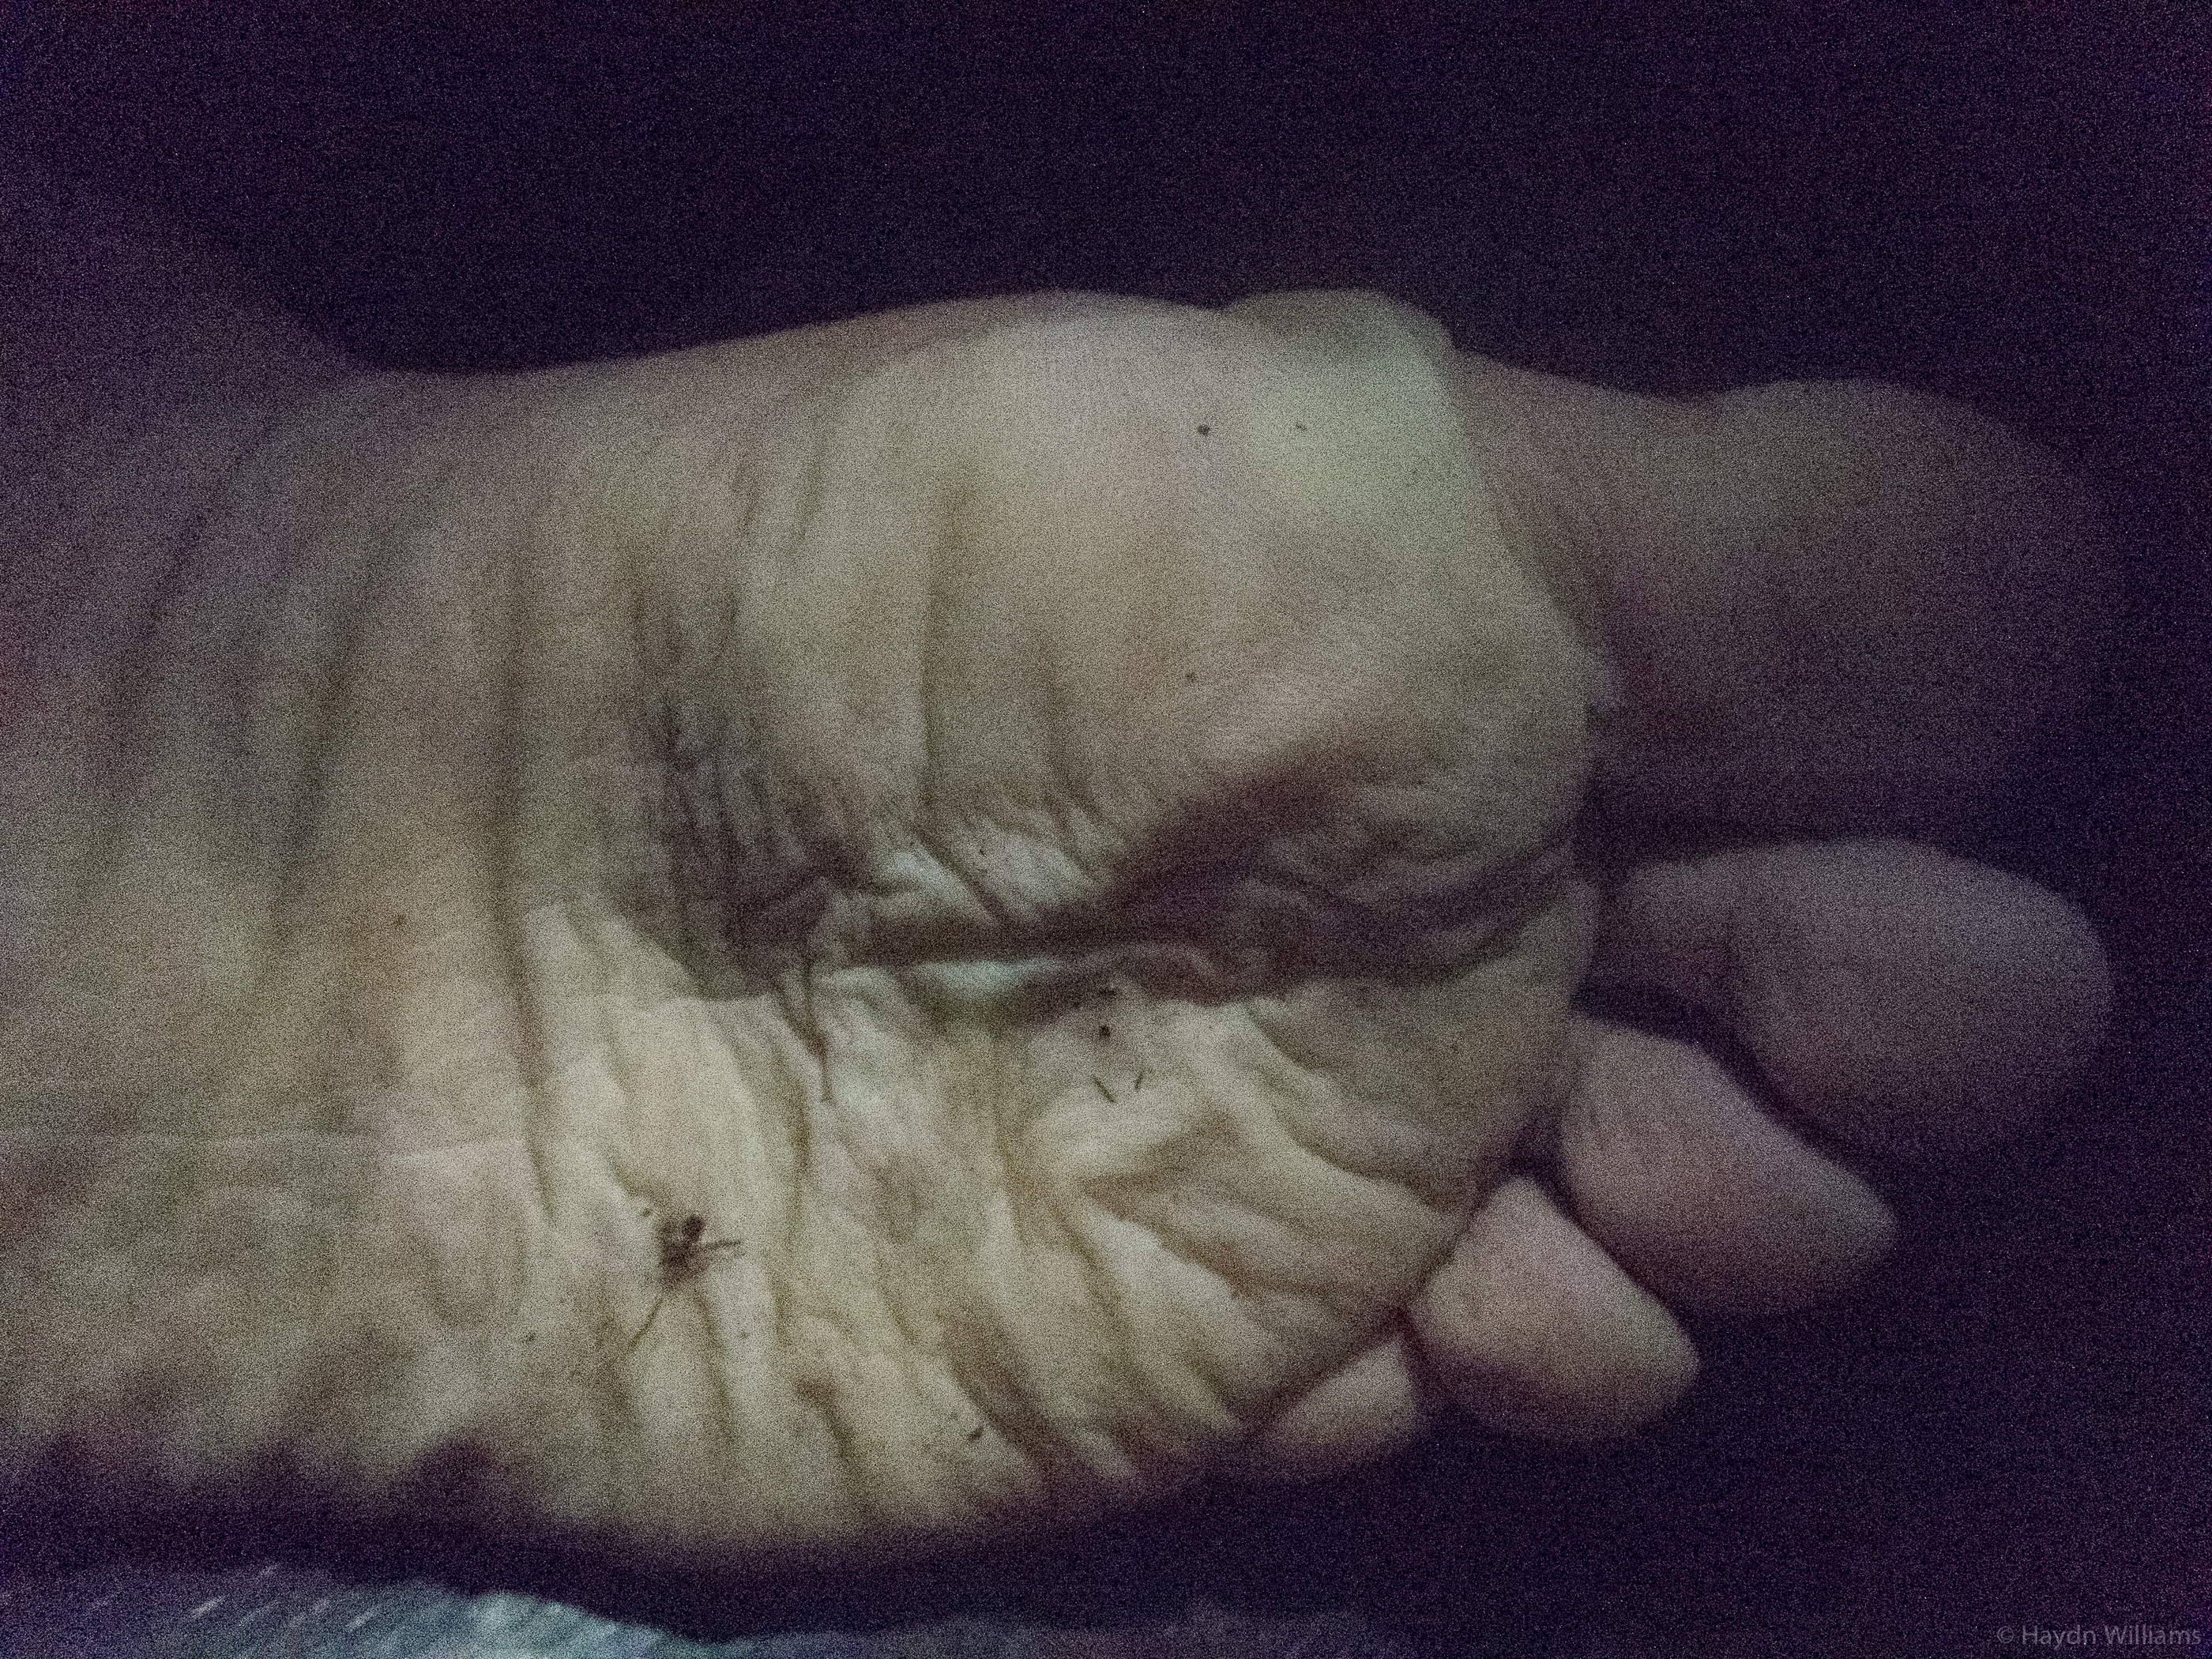 Day 4 - Nasty end-of-the-day feet. © Haydn Williams 2017